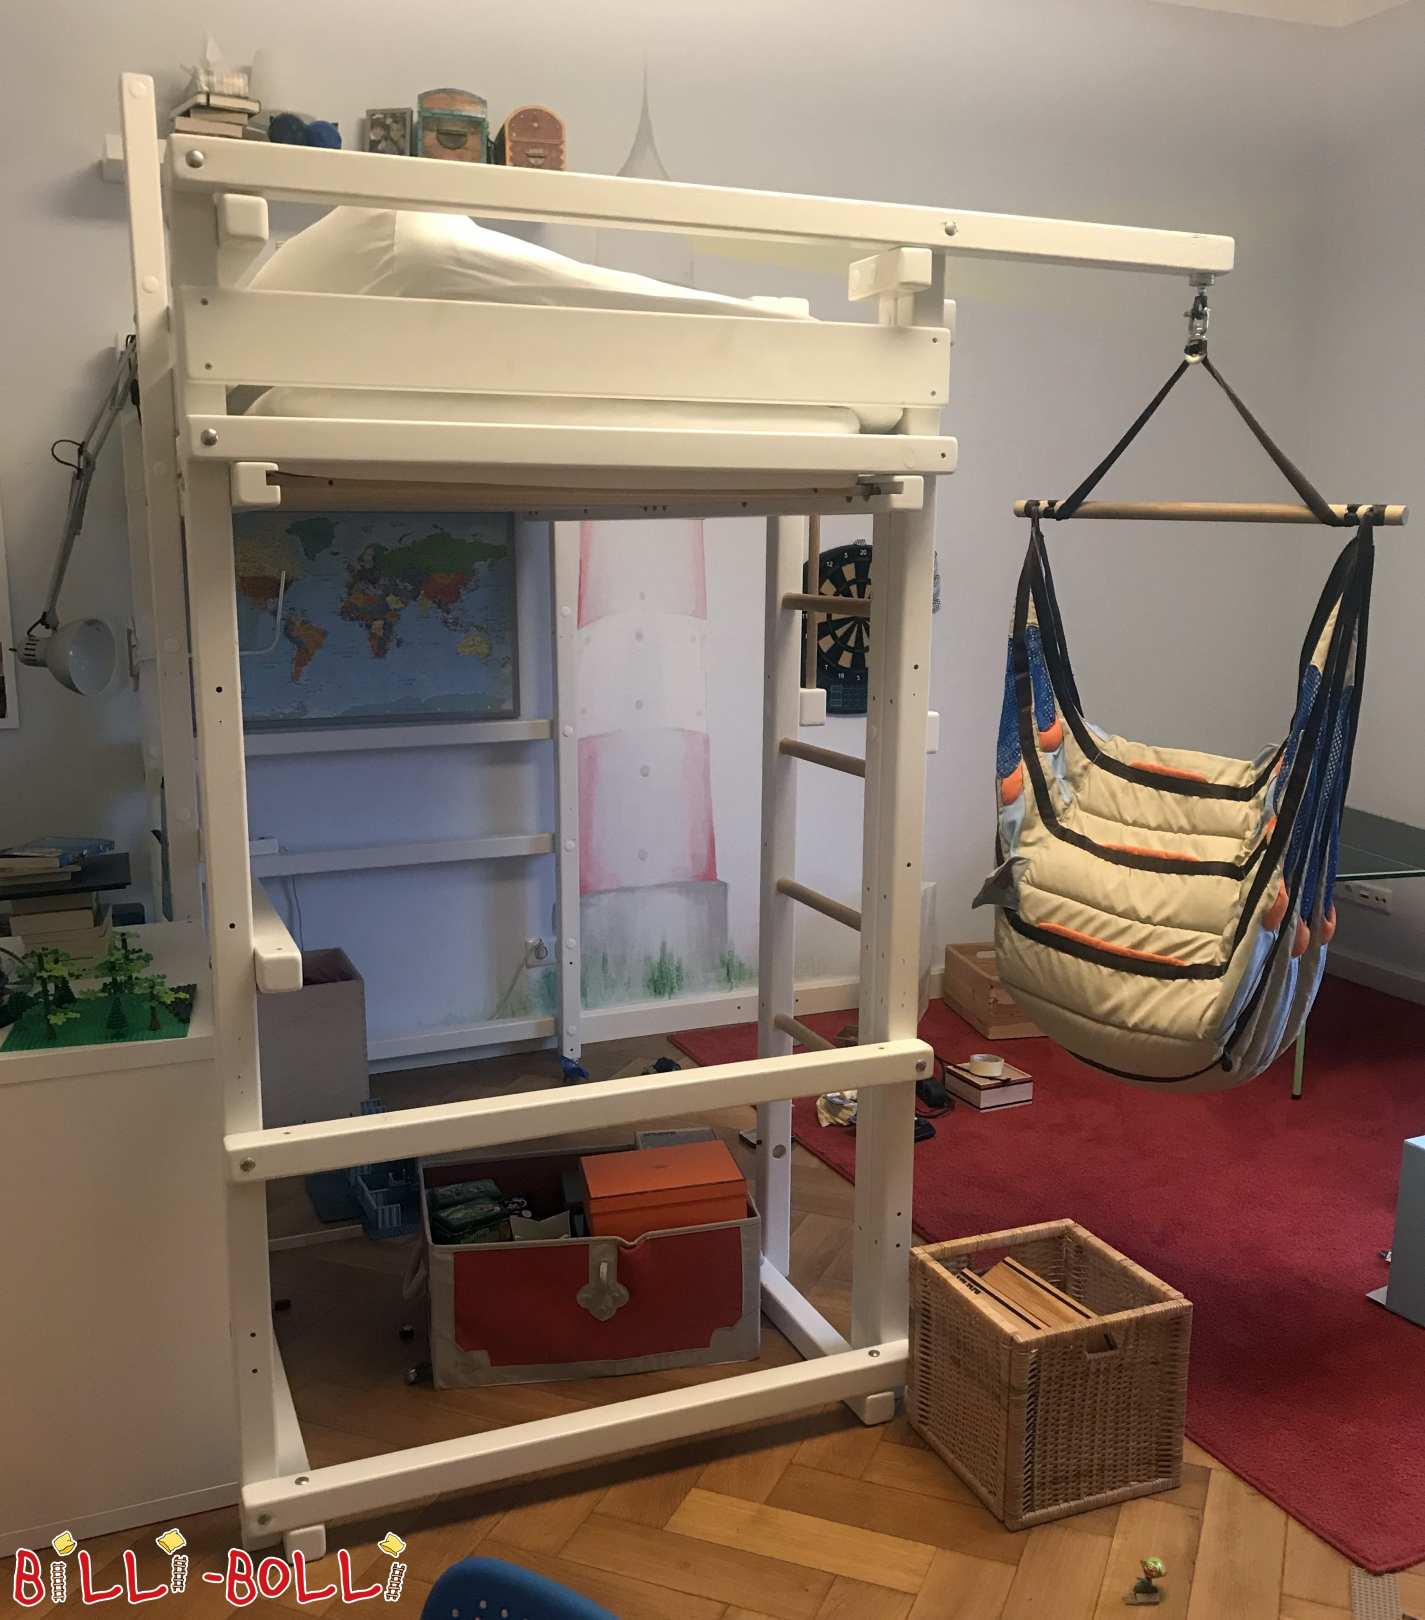 Growing bunk bed spruce white, 100 x 200 cm, Munich (second hand loft bed)